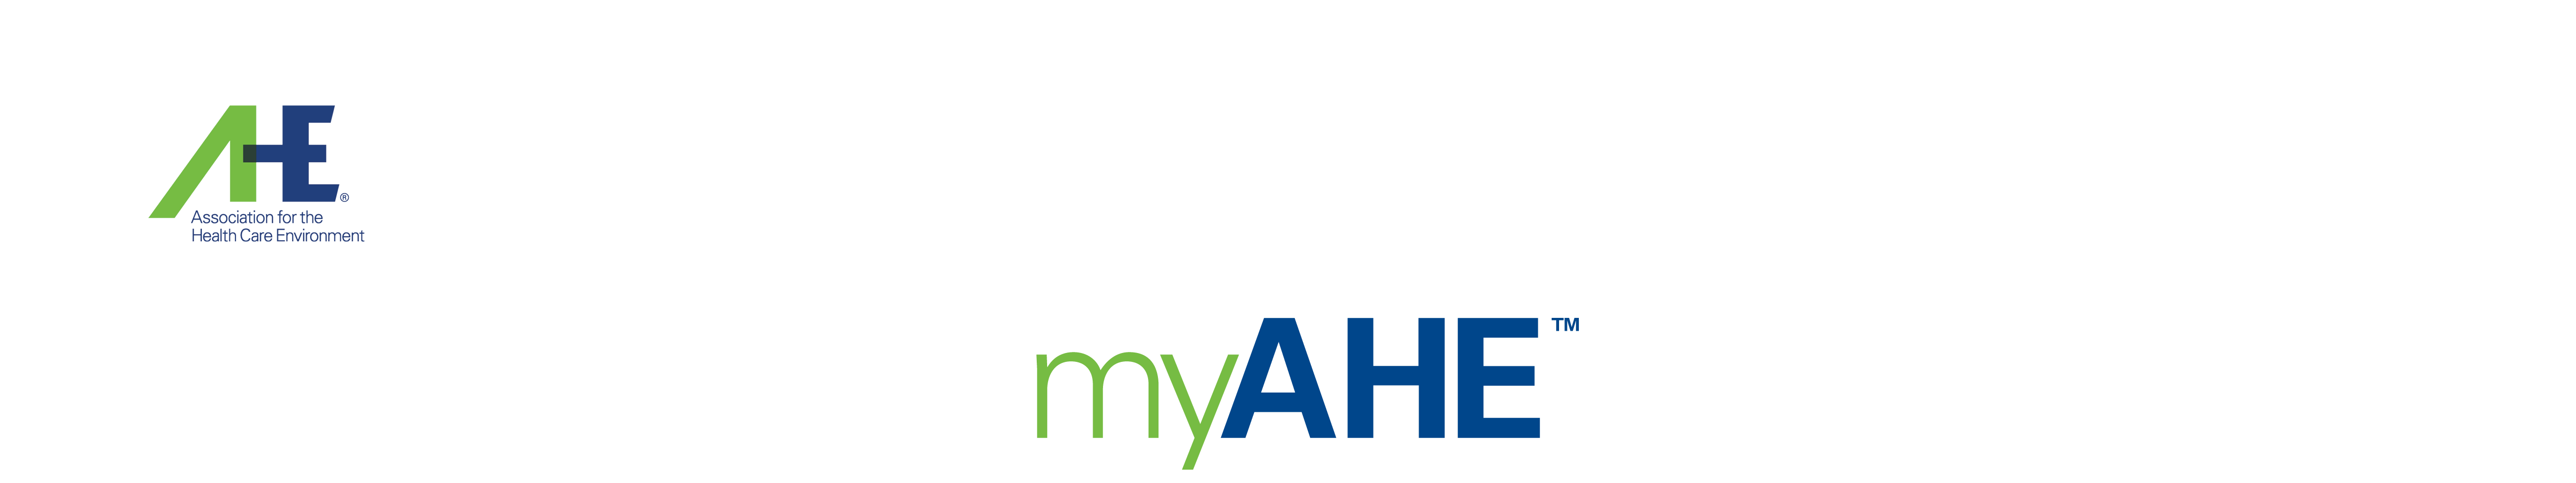 MyAHE - Association for the Health Care Environment Member Community